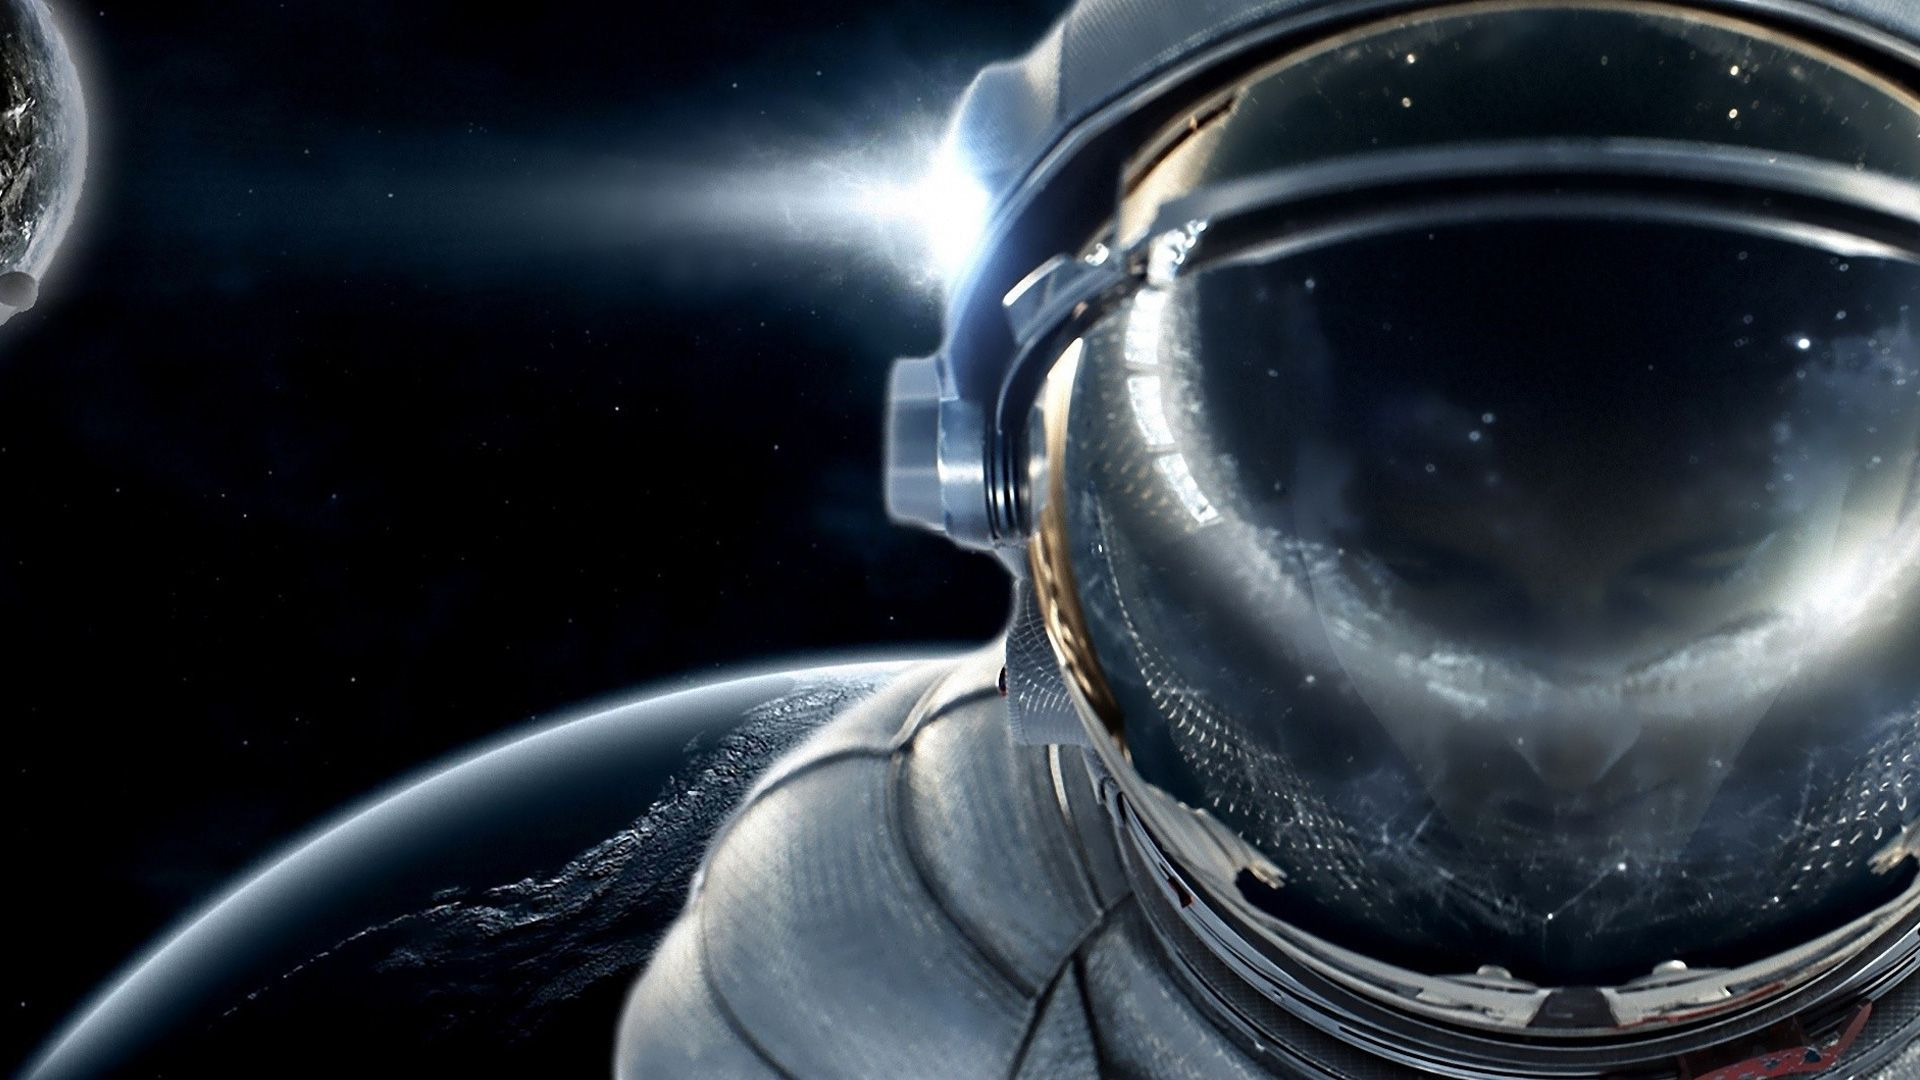 Cool astronaut wallpapers wallpapersafari - Cool space wallpapers ...